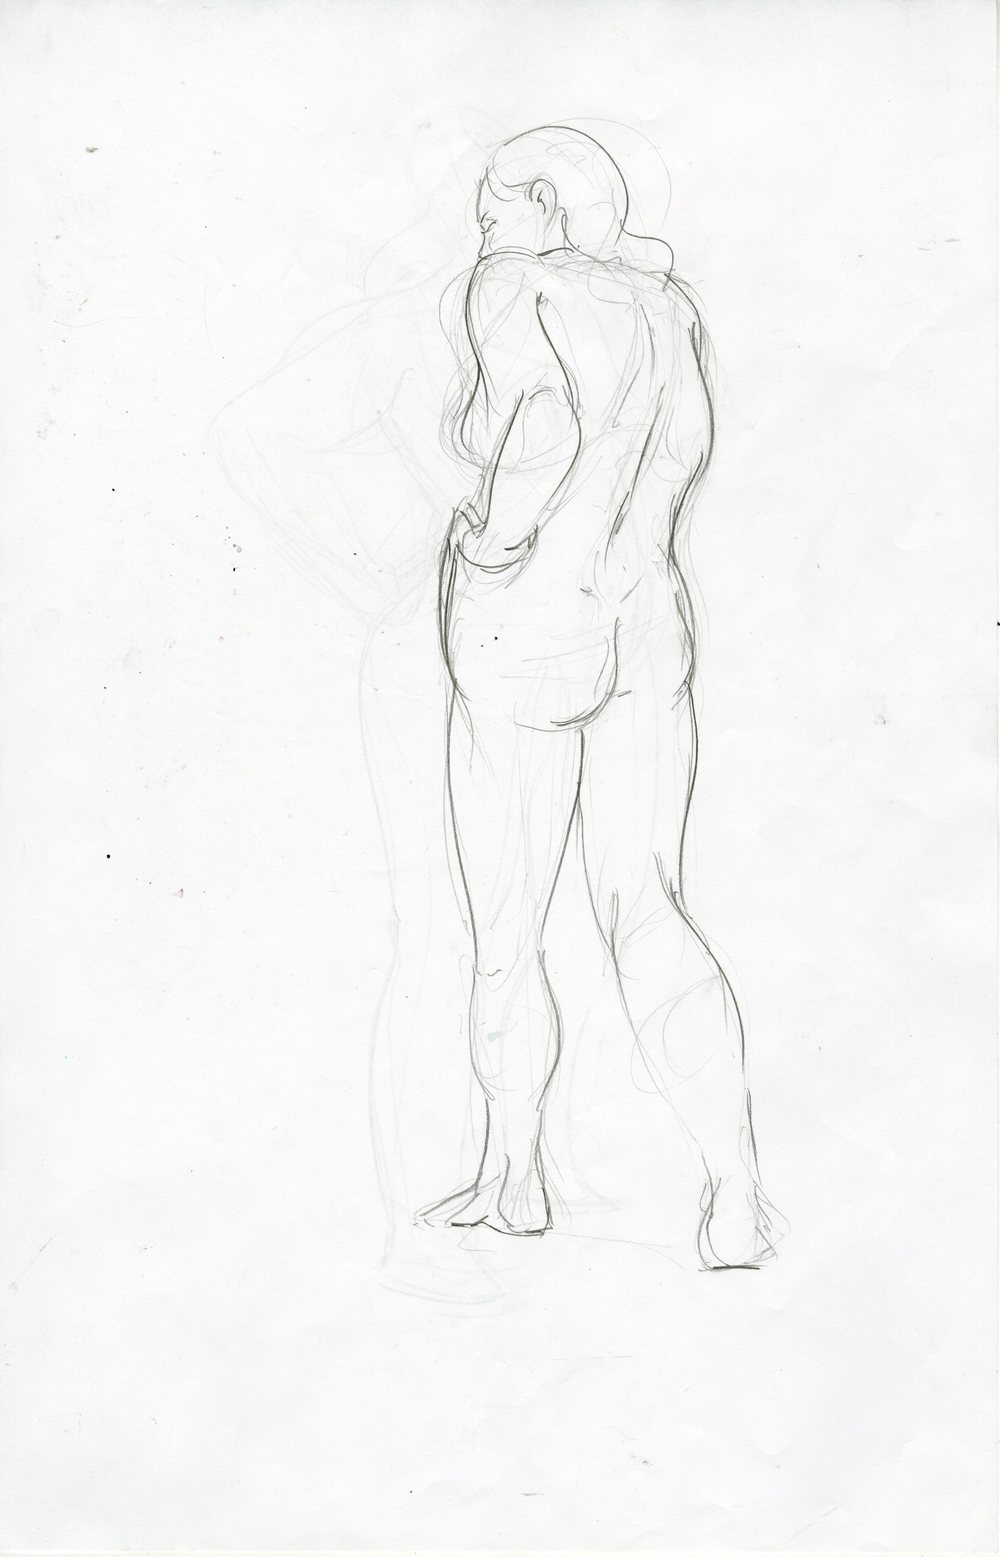 lifeDrawing_012.jpg